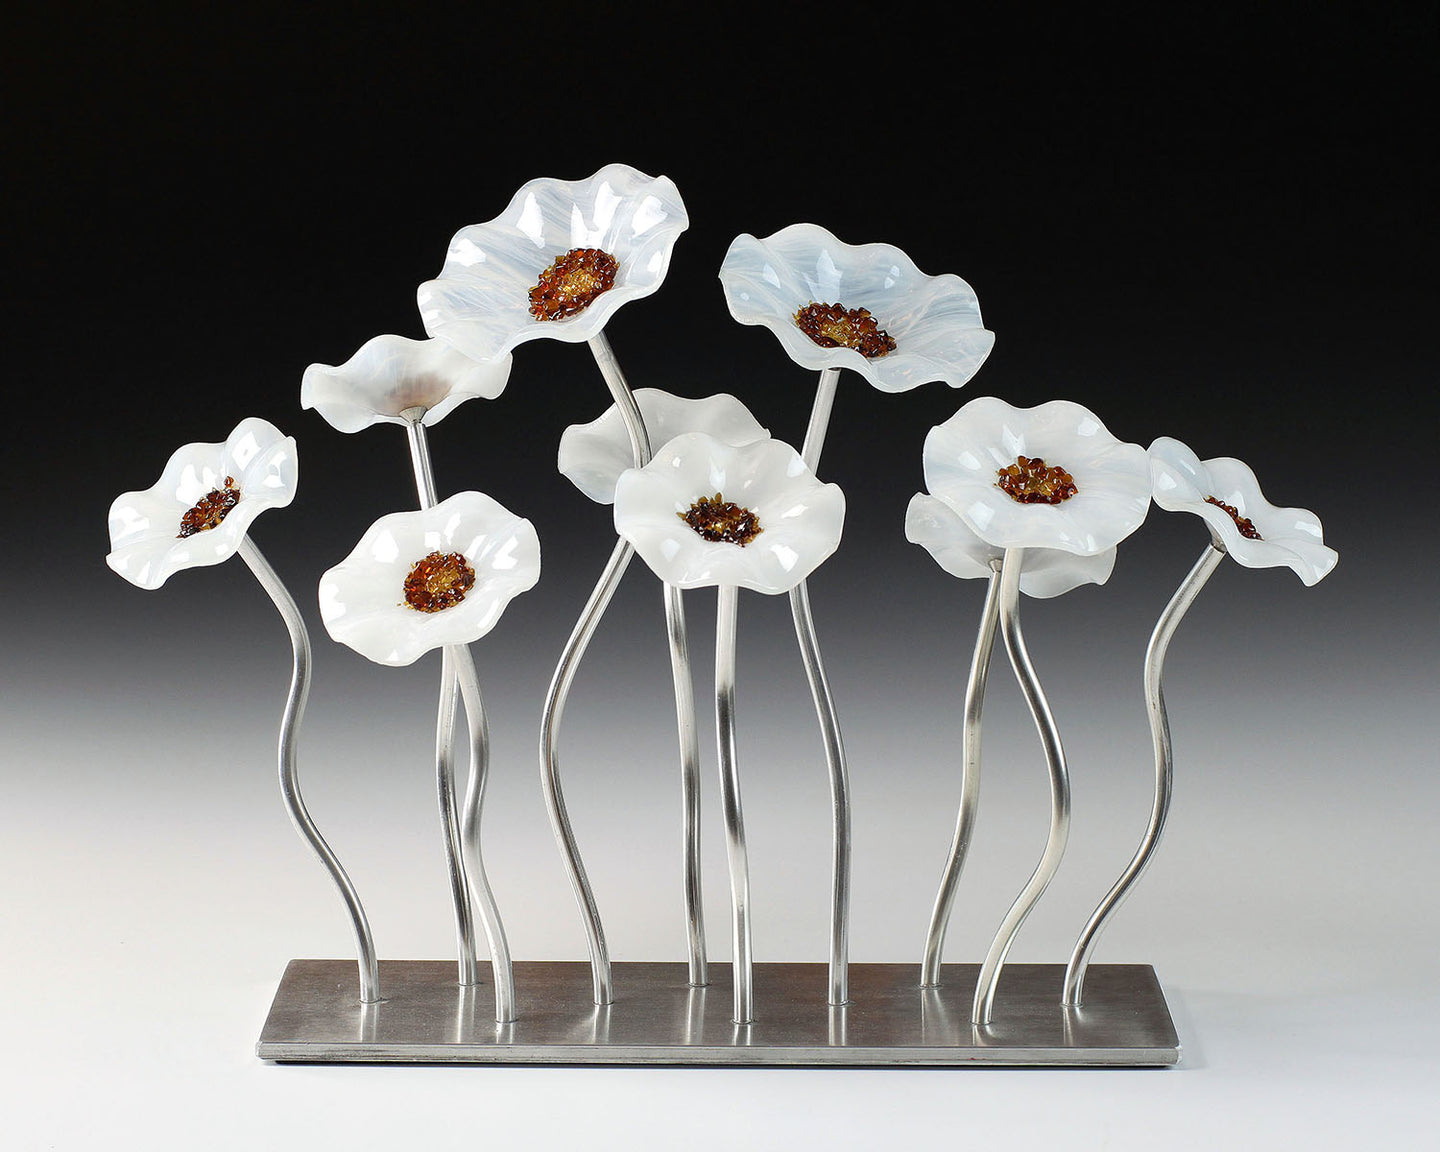 10 Flower Garden - Winter - Glass Flowers by Scott Johnson